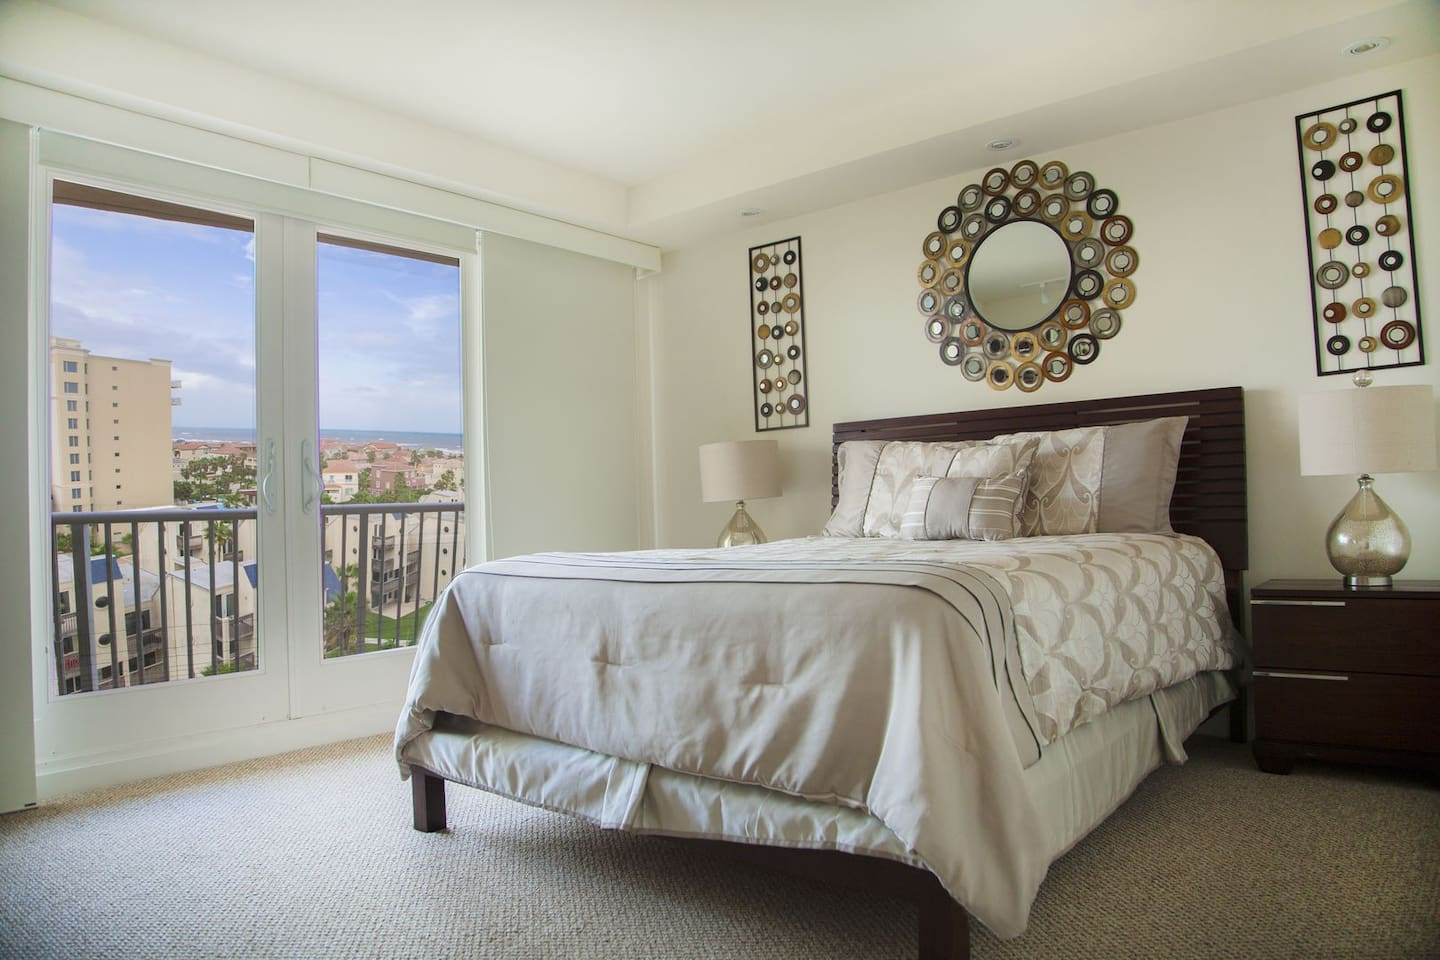 Master Bedroom offers King size bed and great view of the pool area and a partial view of the ocean.